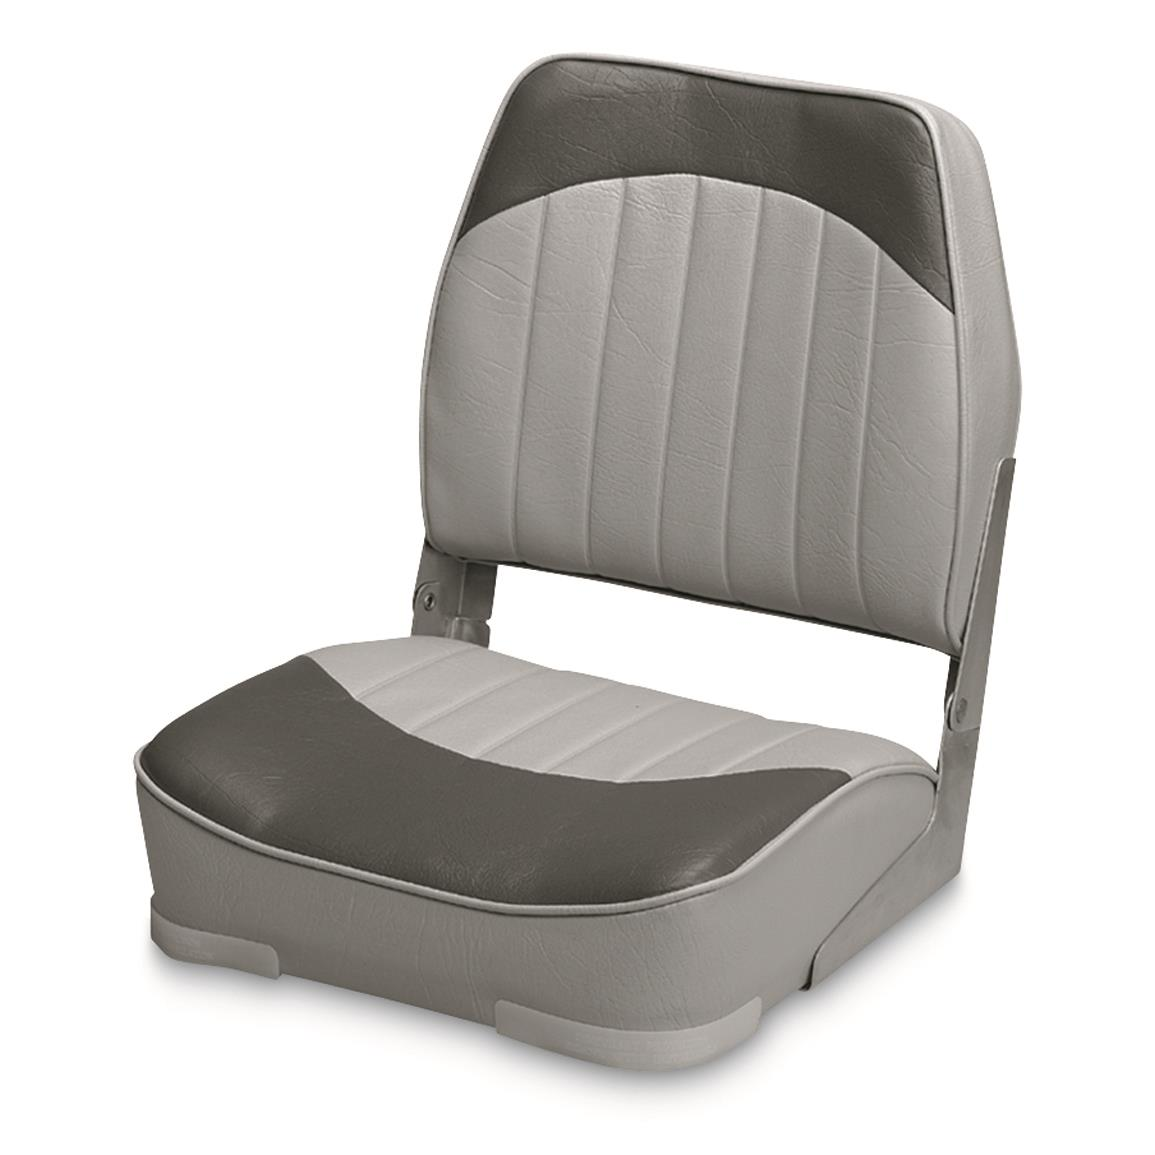 Wise Low - back Economy Fishing Boat Seat, Gray/Charcoal